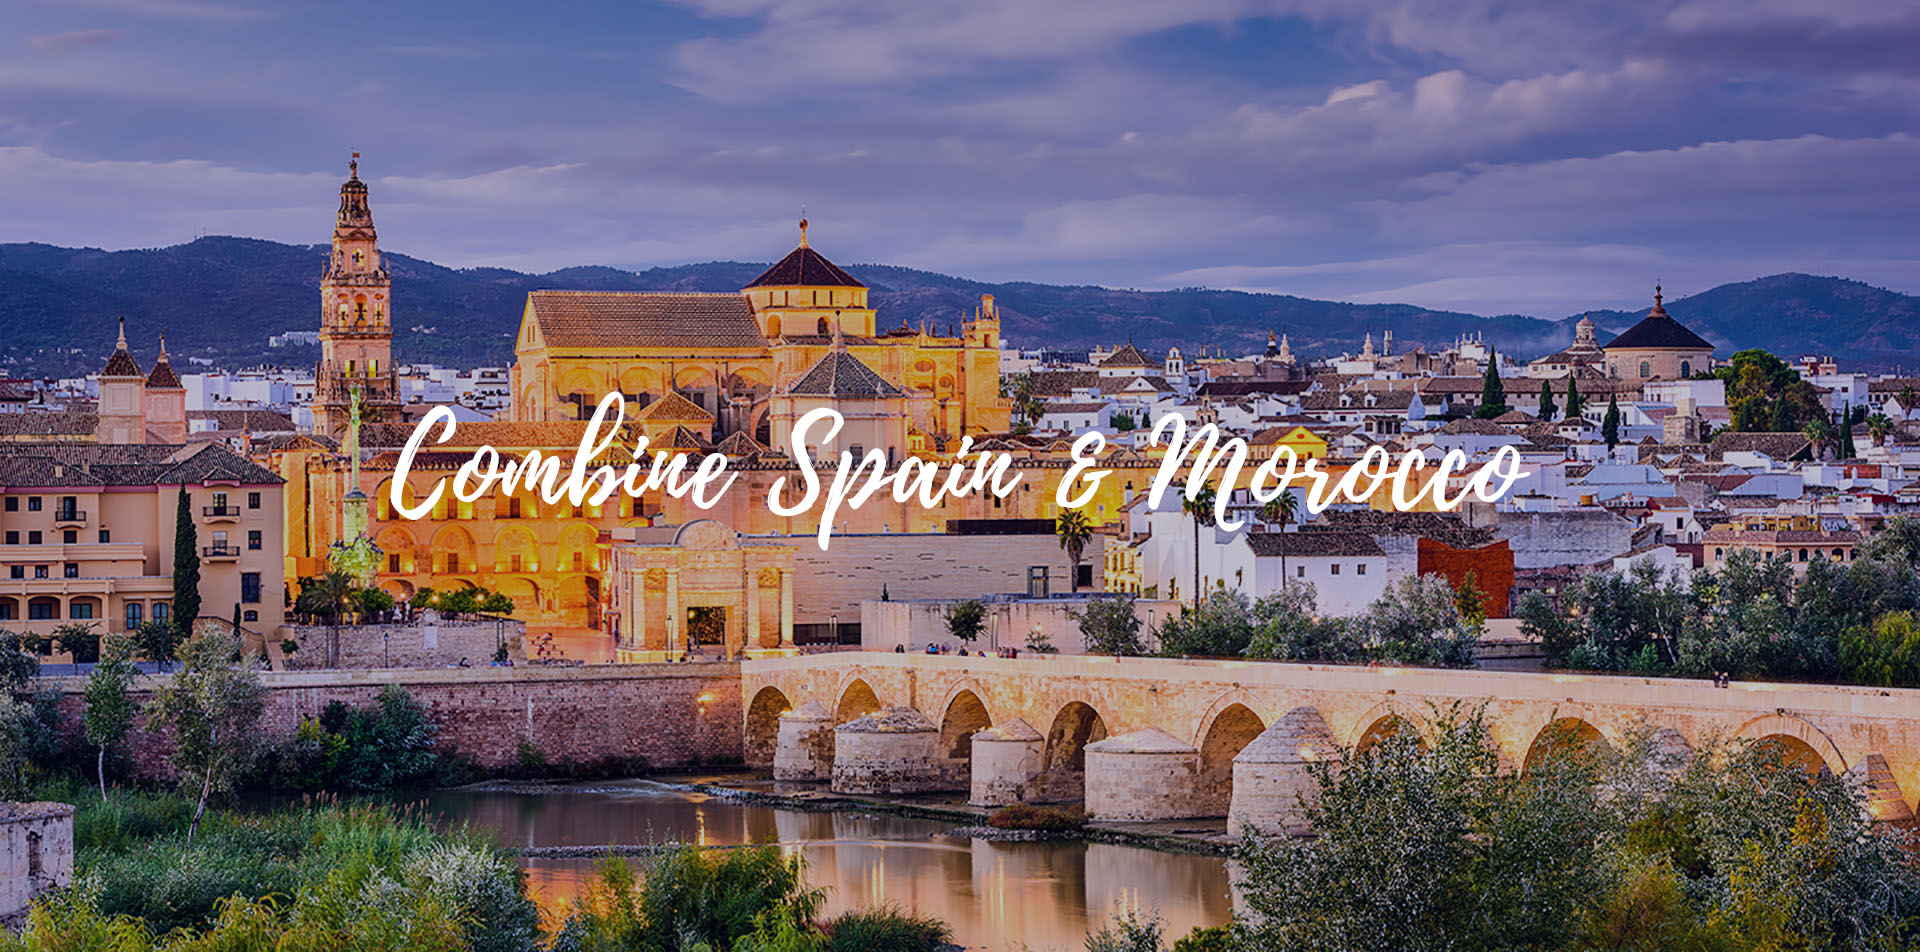 Europe Cordoba historic city skyline at dusk scenic bridge combine Spain and Morocco - luxury vacation destinations